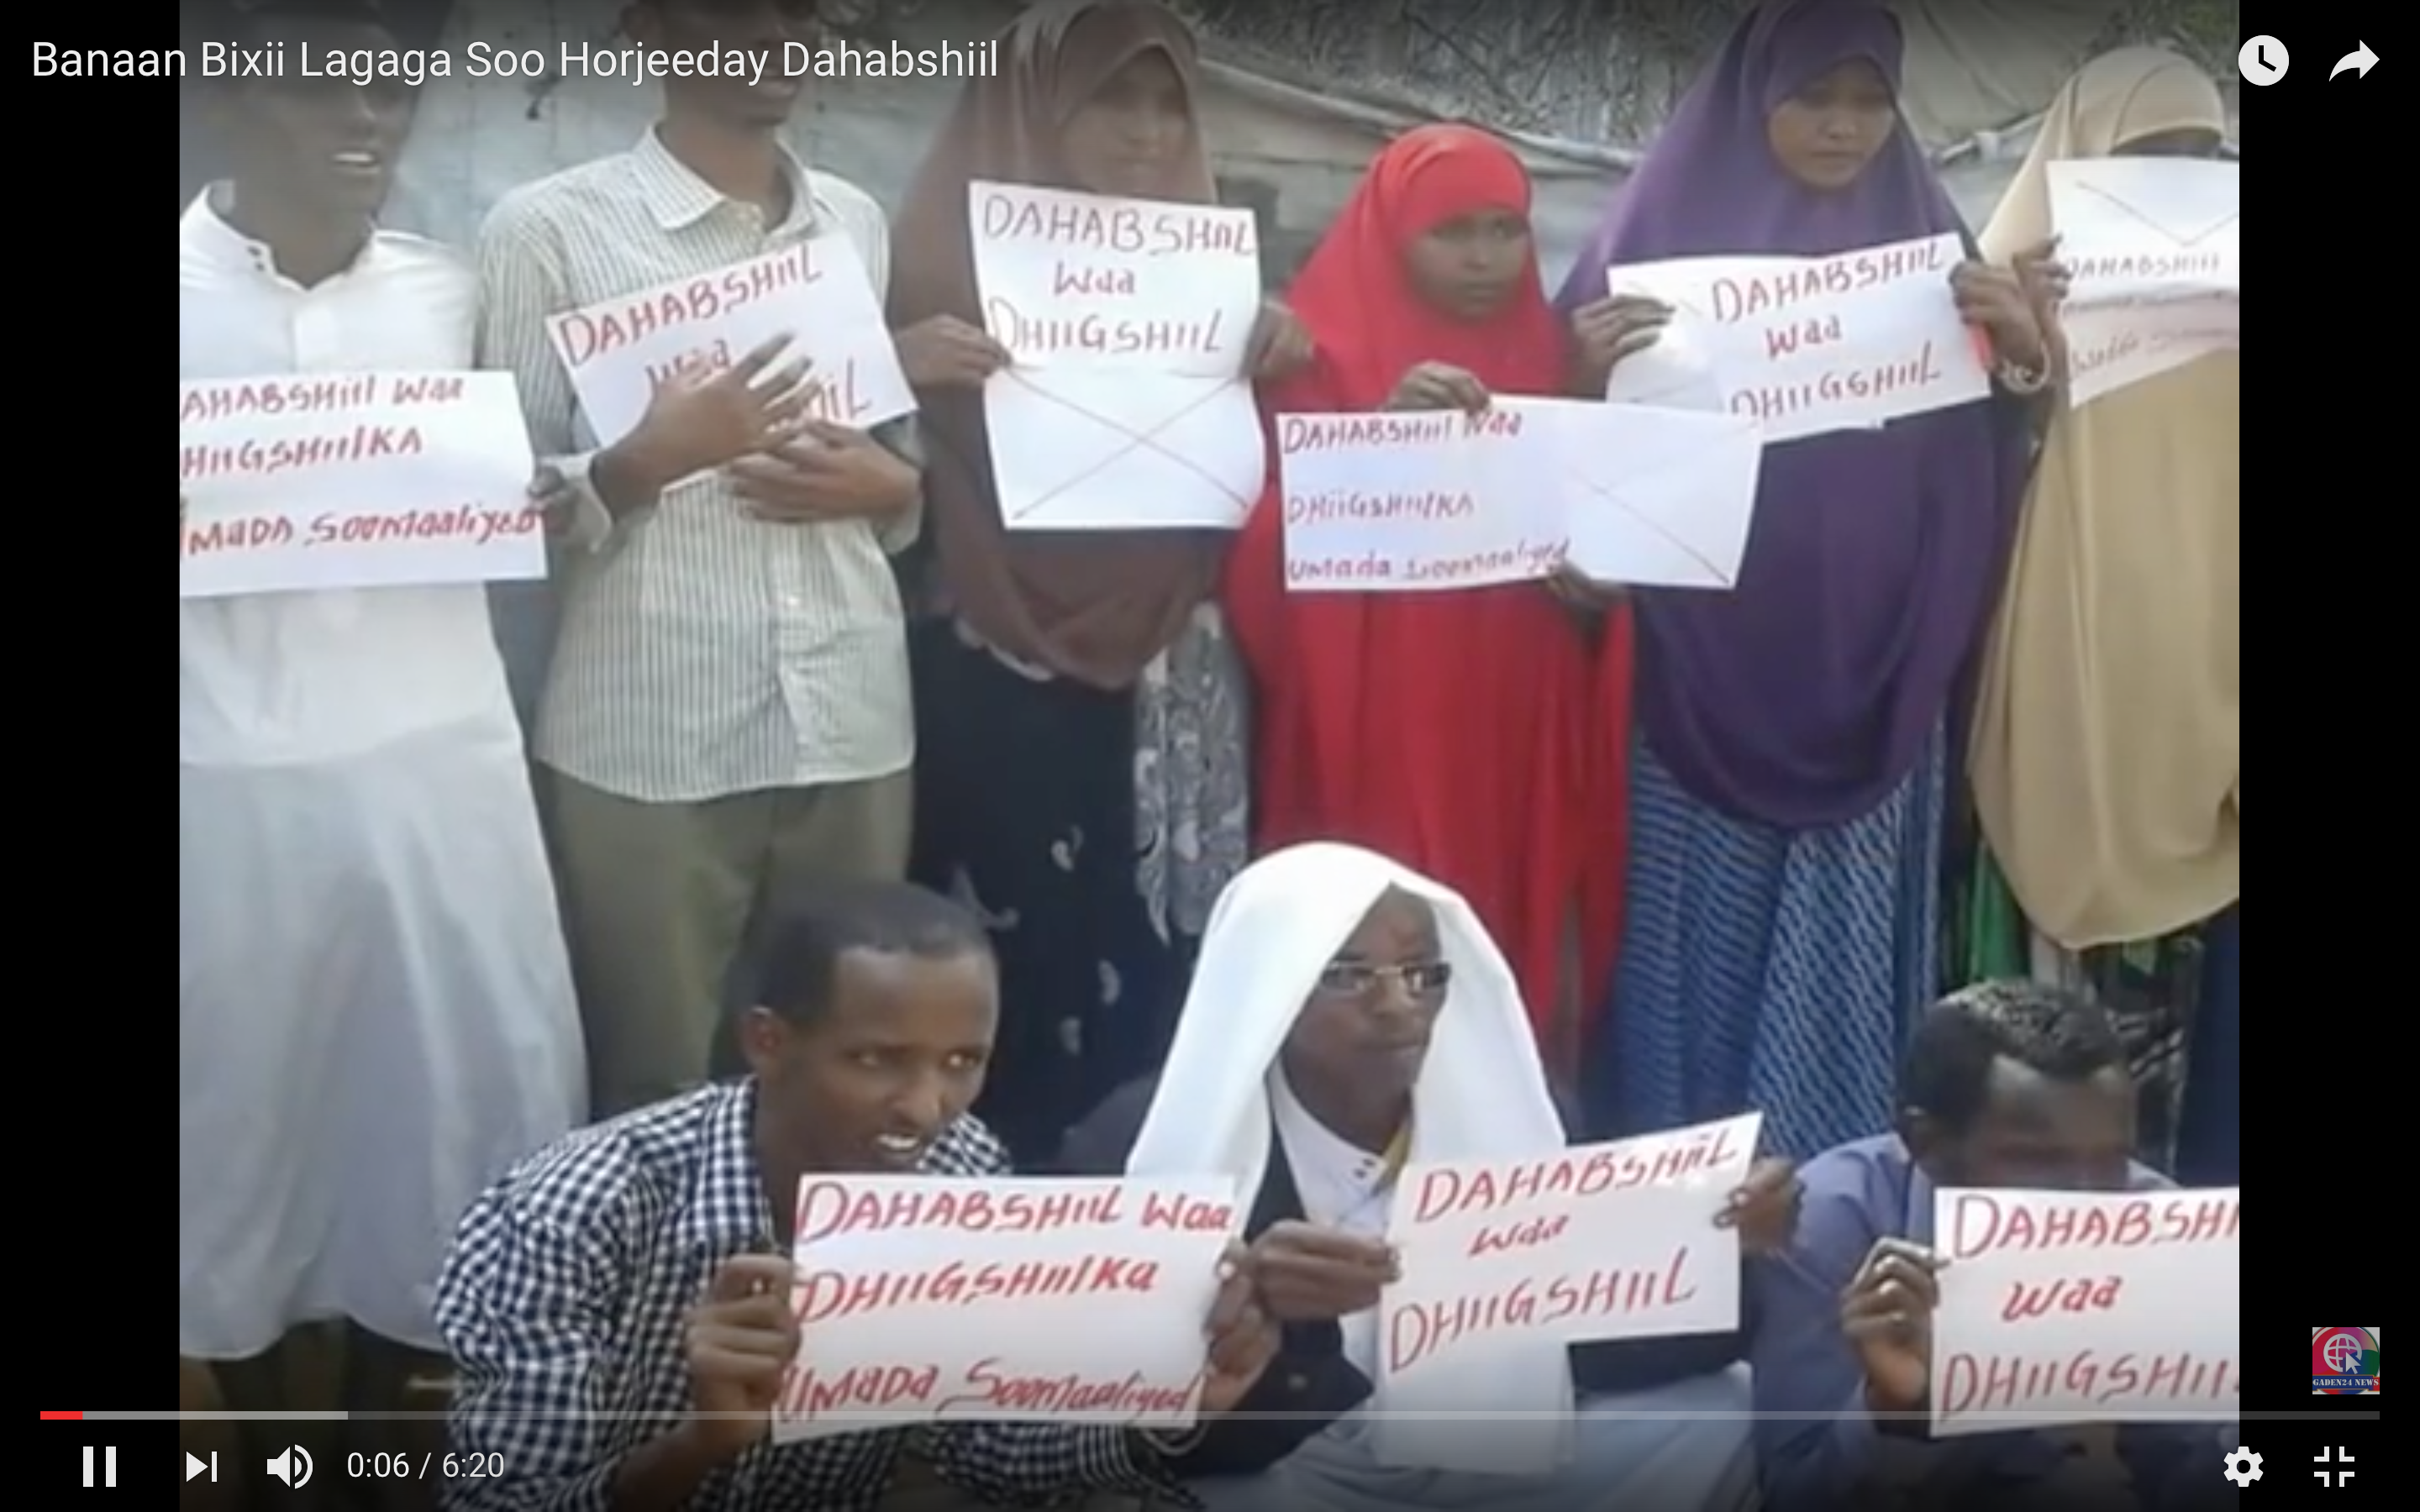 Kenya:Video Dozens of people protest against Dahabshiil over alleged killings‏